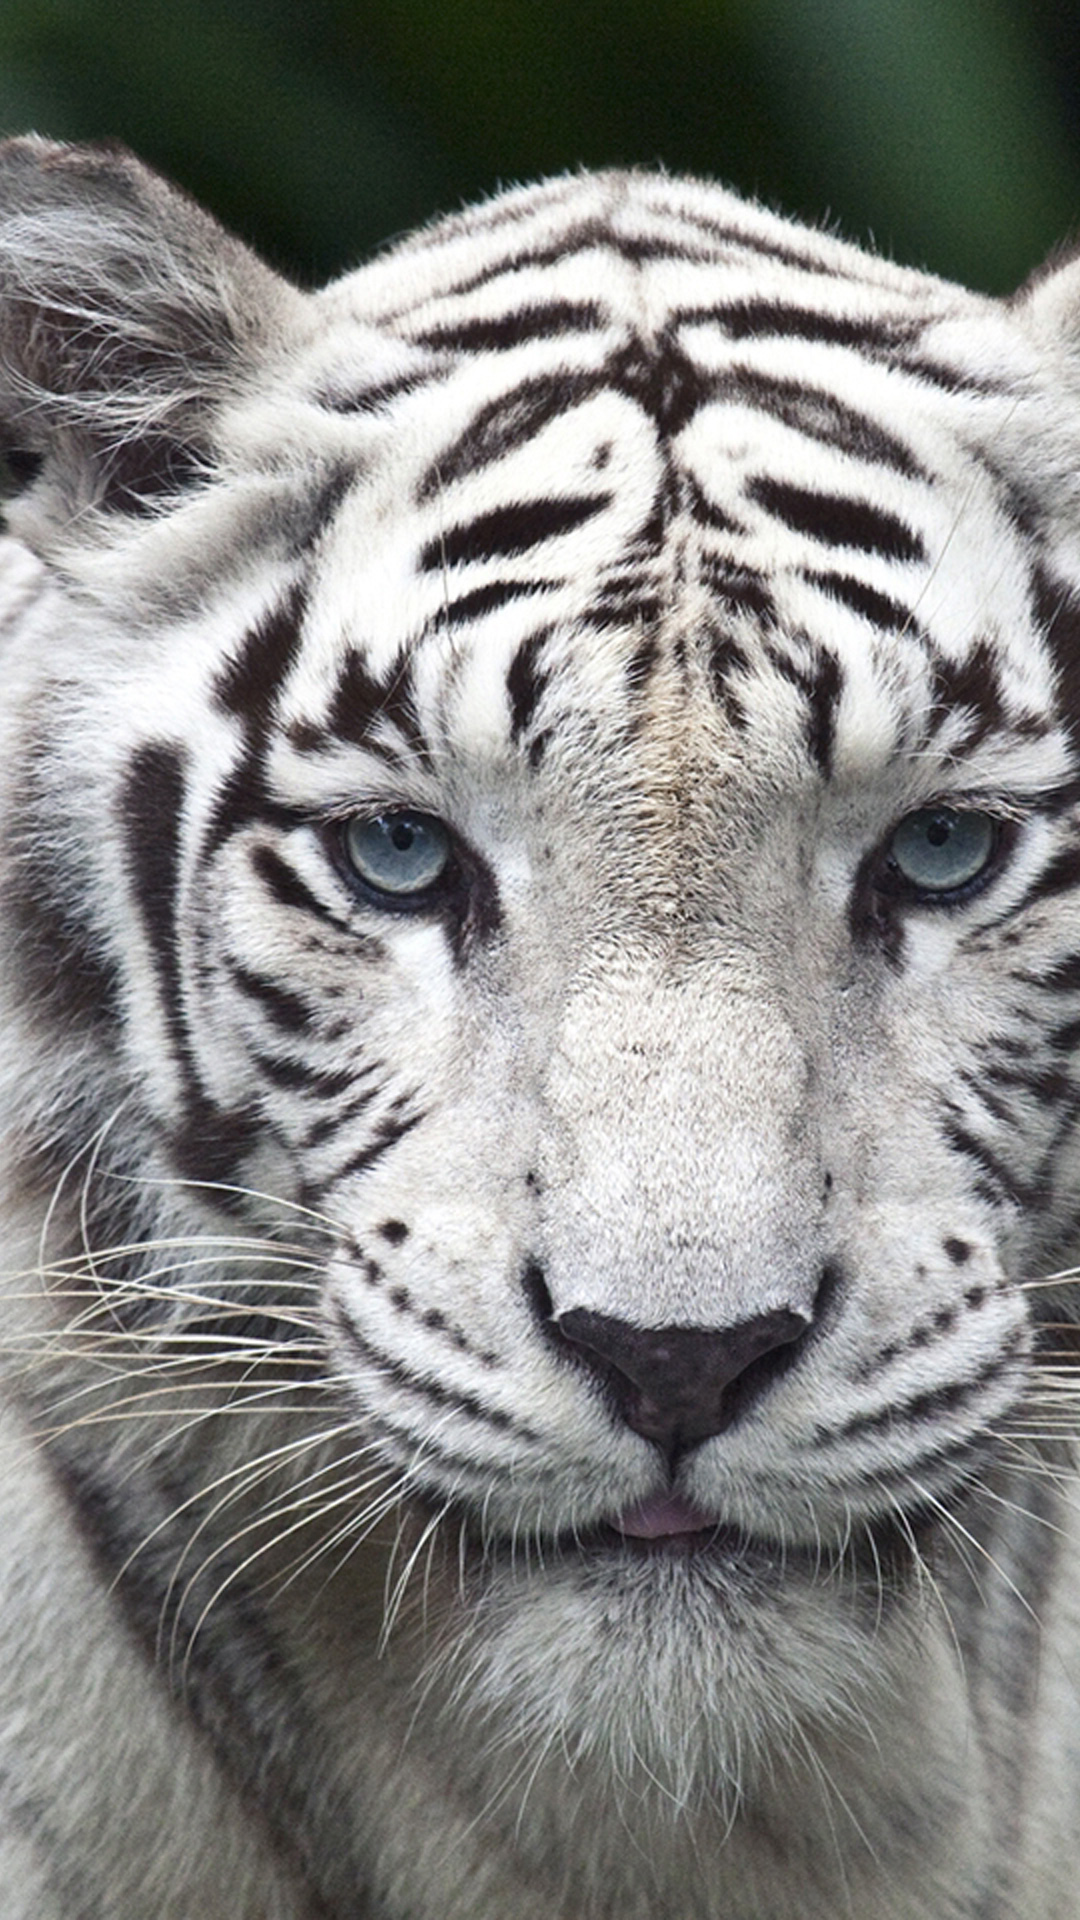 wallpaper hd white tiger - photo #31